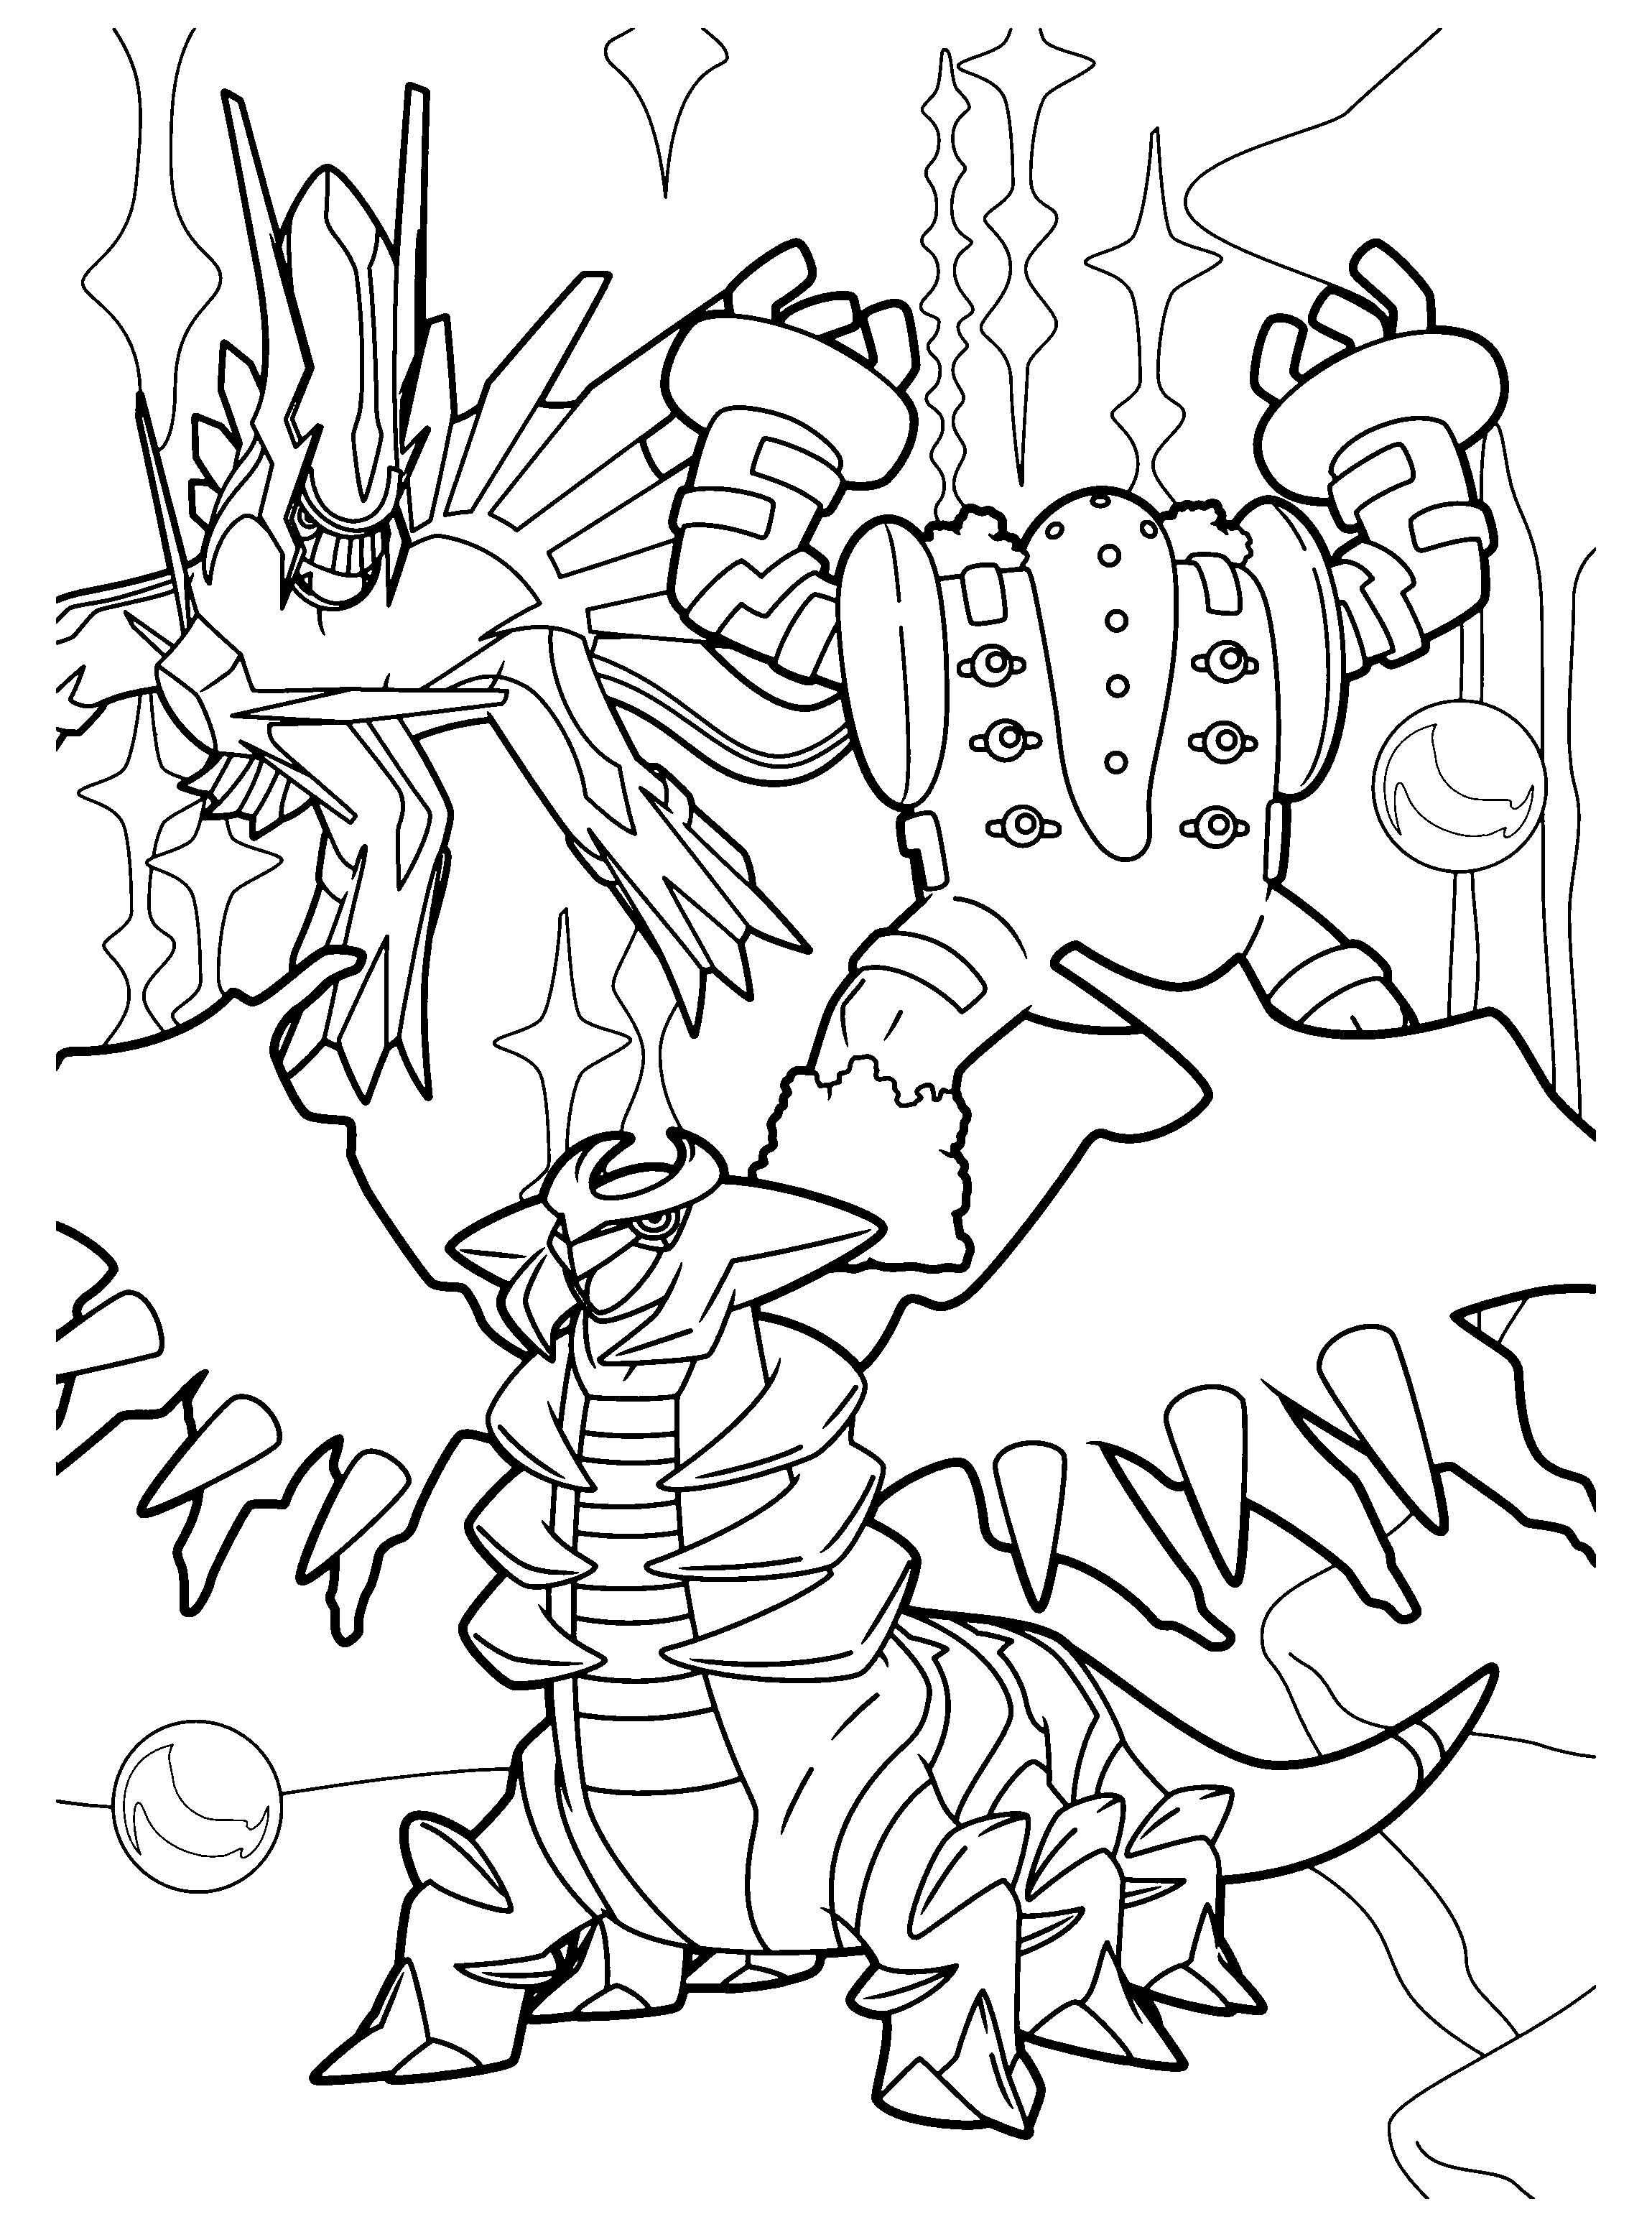 Pokemon Ausmalbilder Giratina : 100 Pokemon Coloring Pages Giratina Yu Gi Oh Coloring Pages